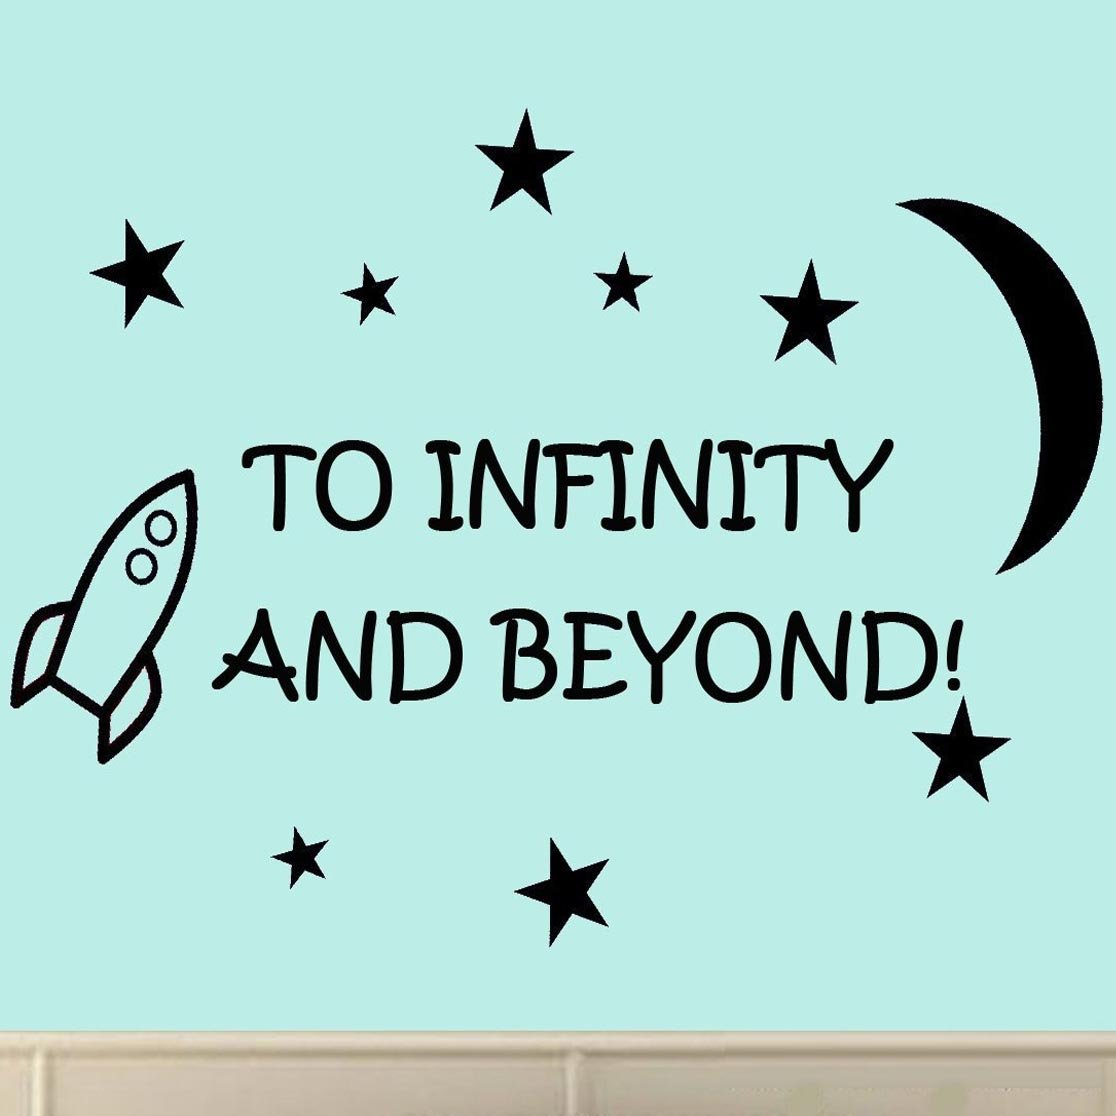 amazon com to infinity and beyond vinyl wall decals quotes kids amazon com to infinity and beyond vinyl wall decals quotes kids room wall quote nursery wall decals boys room home kitchen